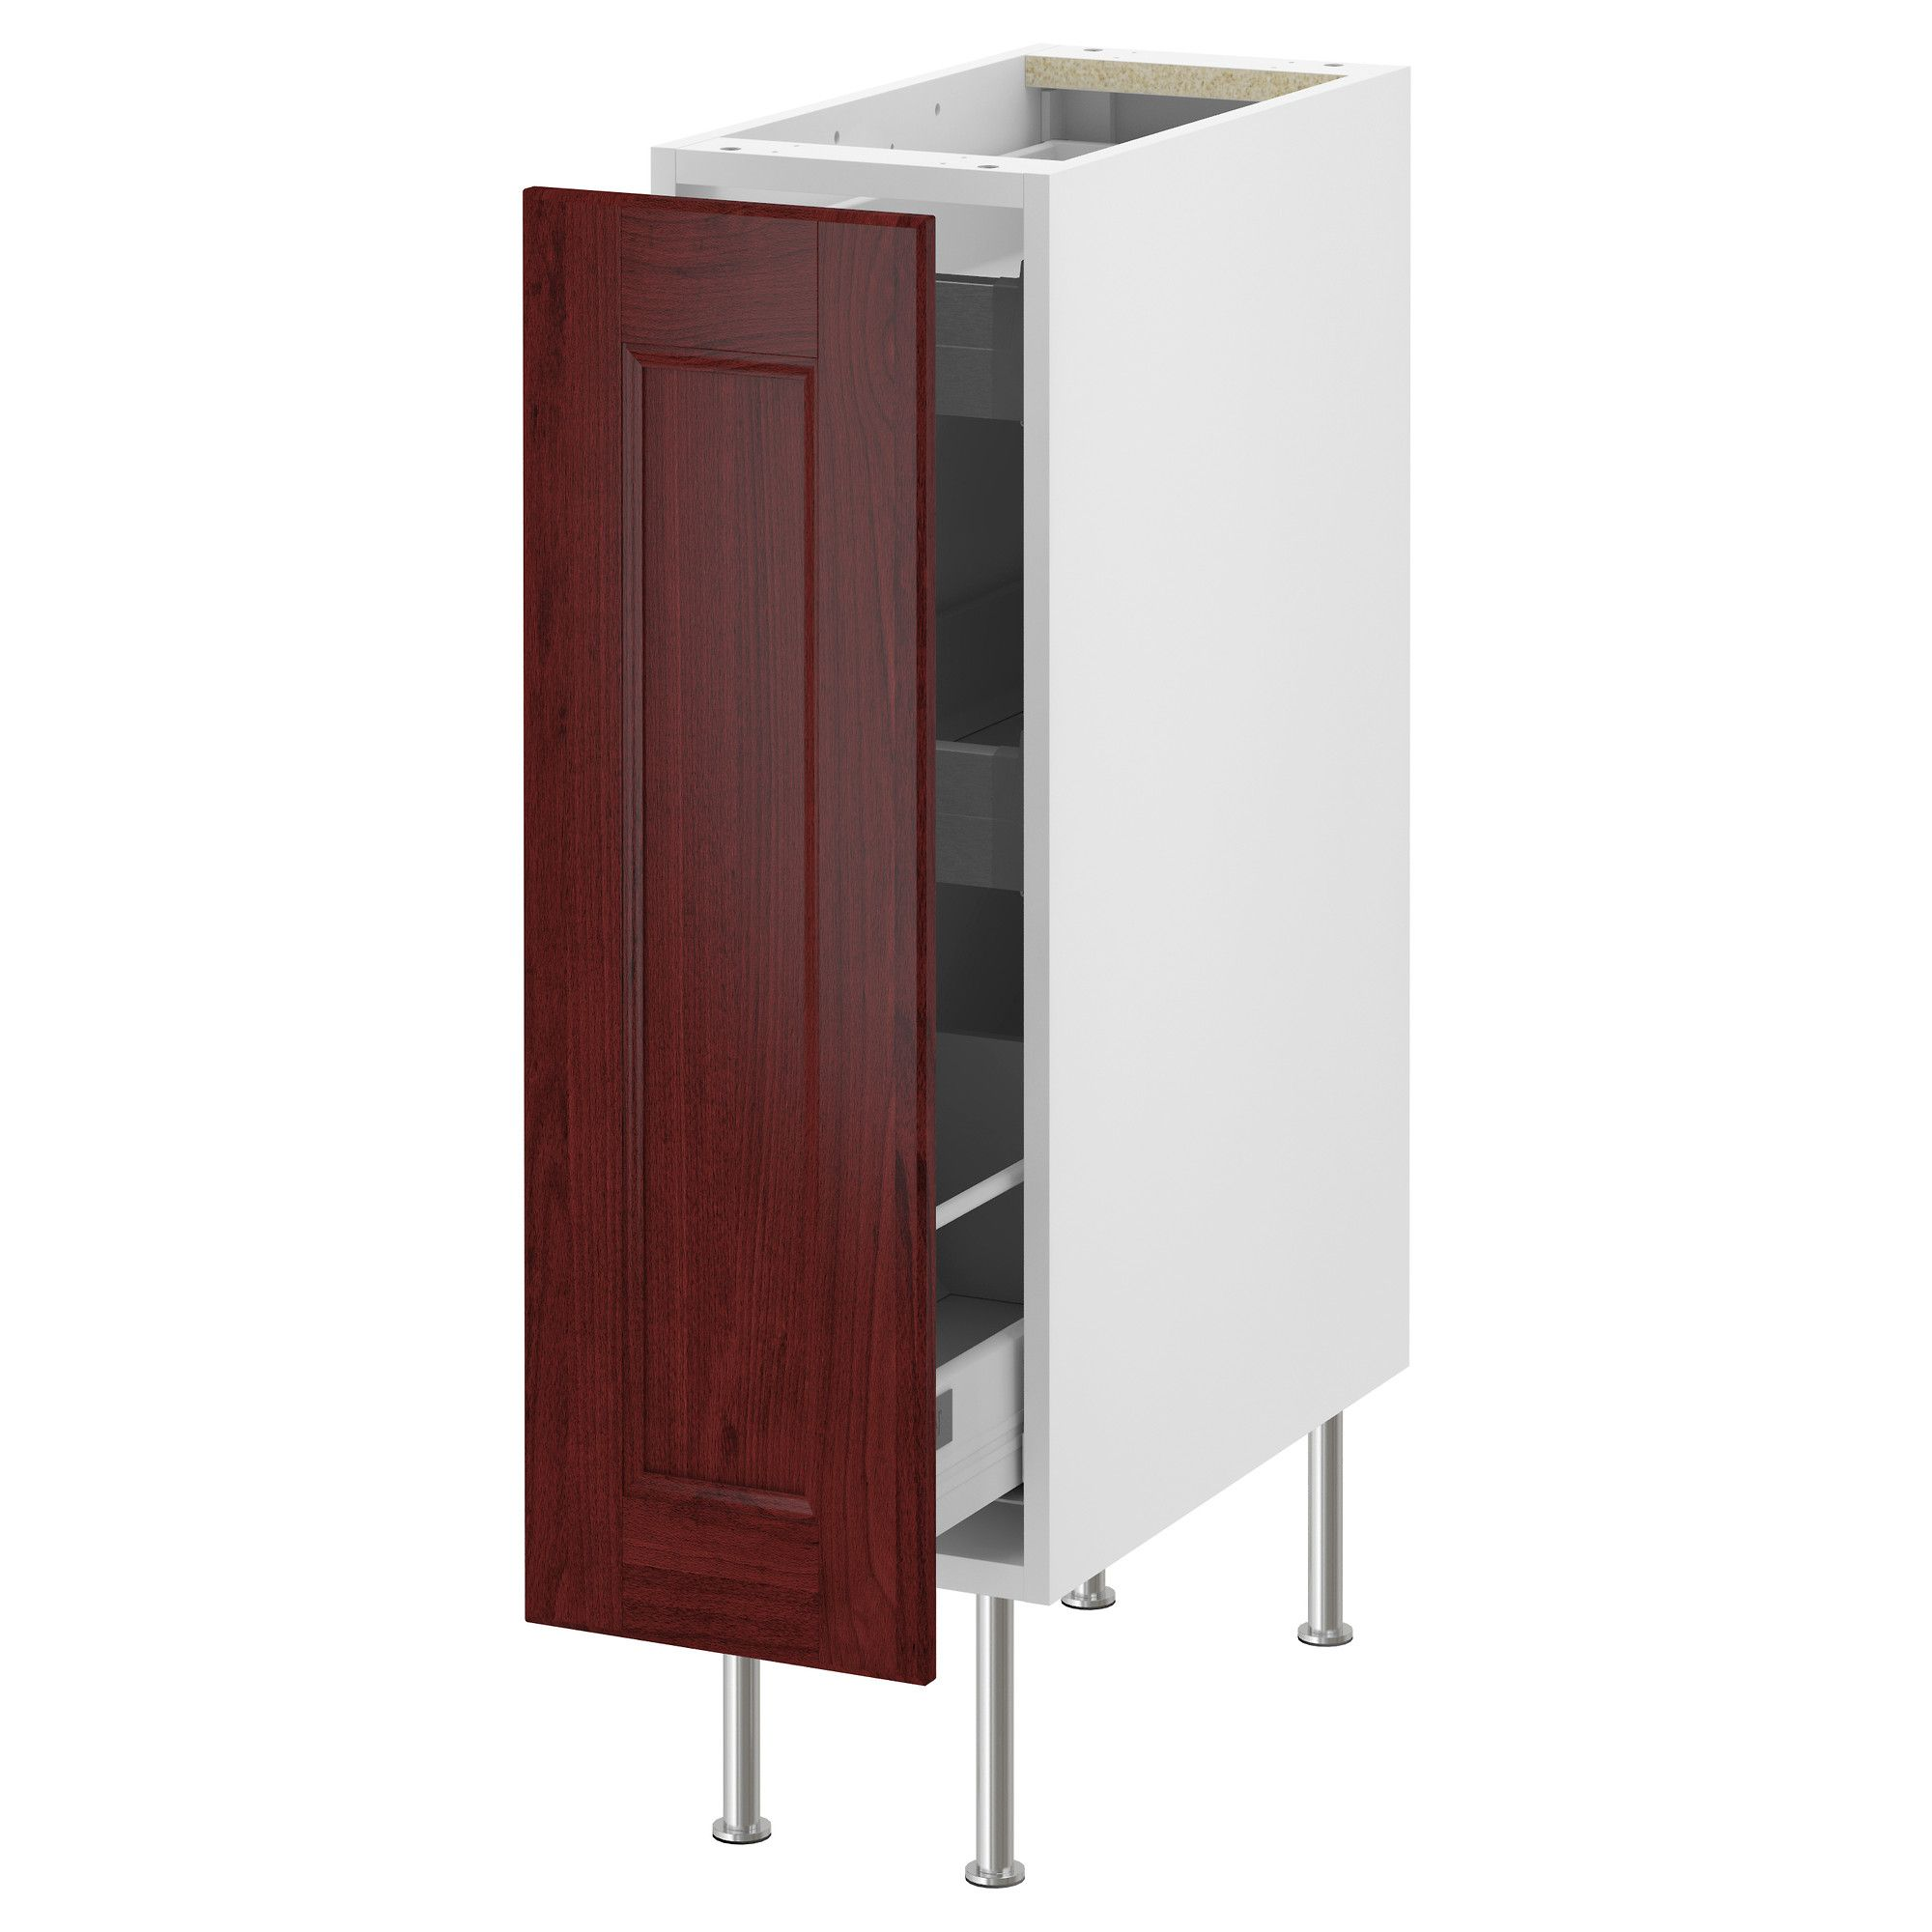 Cookie Sheets Or Trash Can AKURUM Base Cabinet With Pull Out Storage    White,